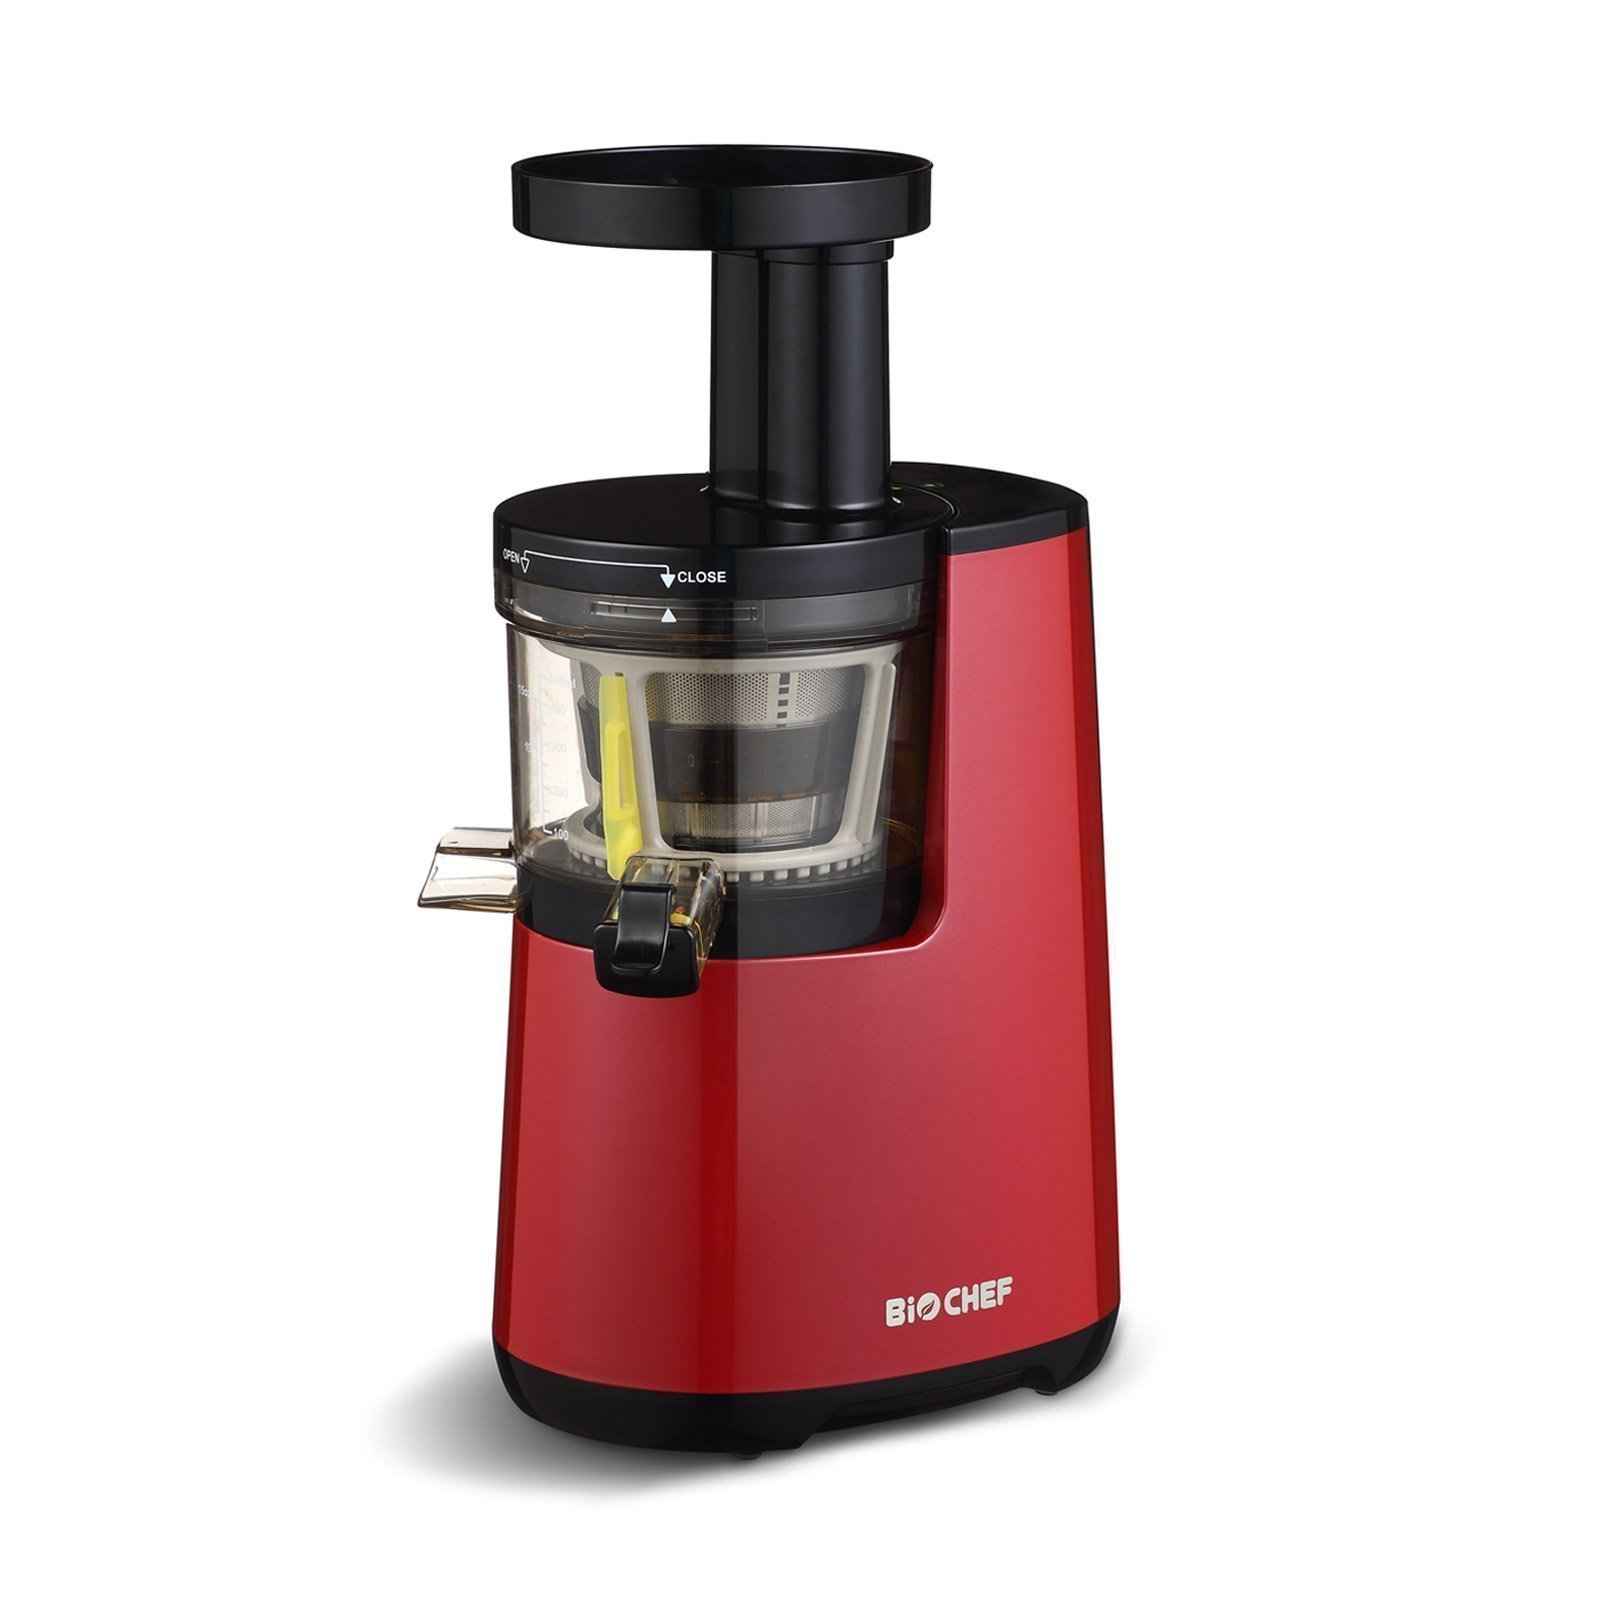 Slow Juicer Mso 12m Cena : NEW BioChef Atlas Cold Press Slow Fruit Juicer - Red eBay